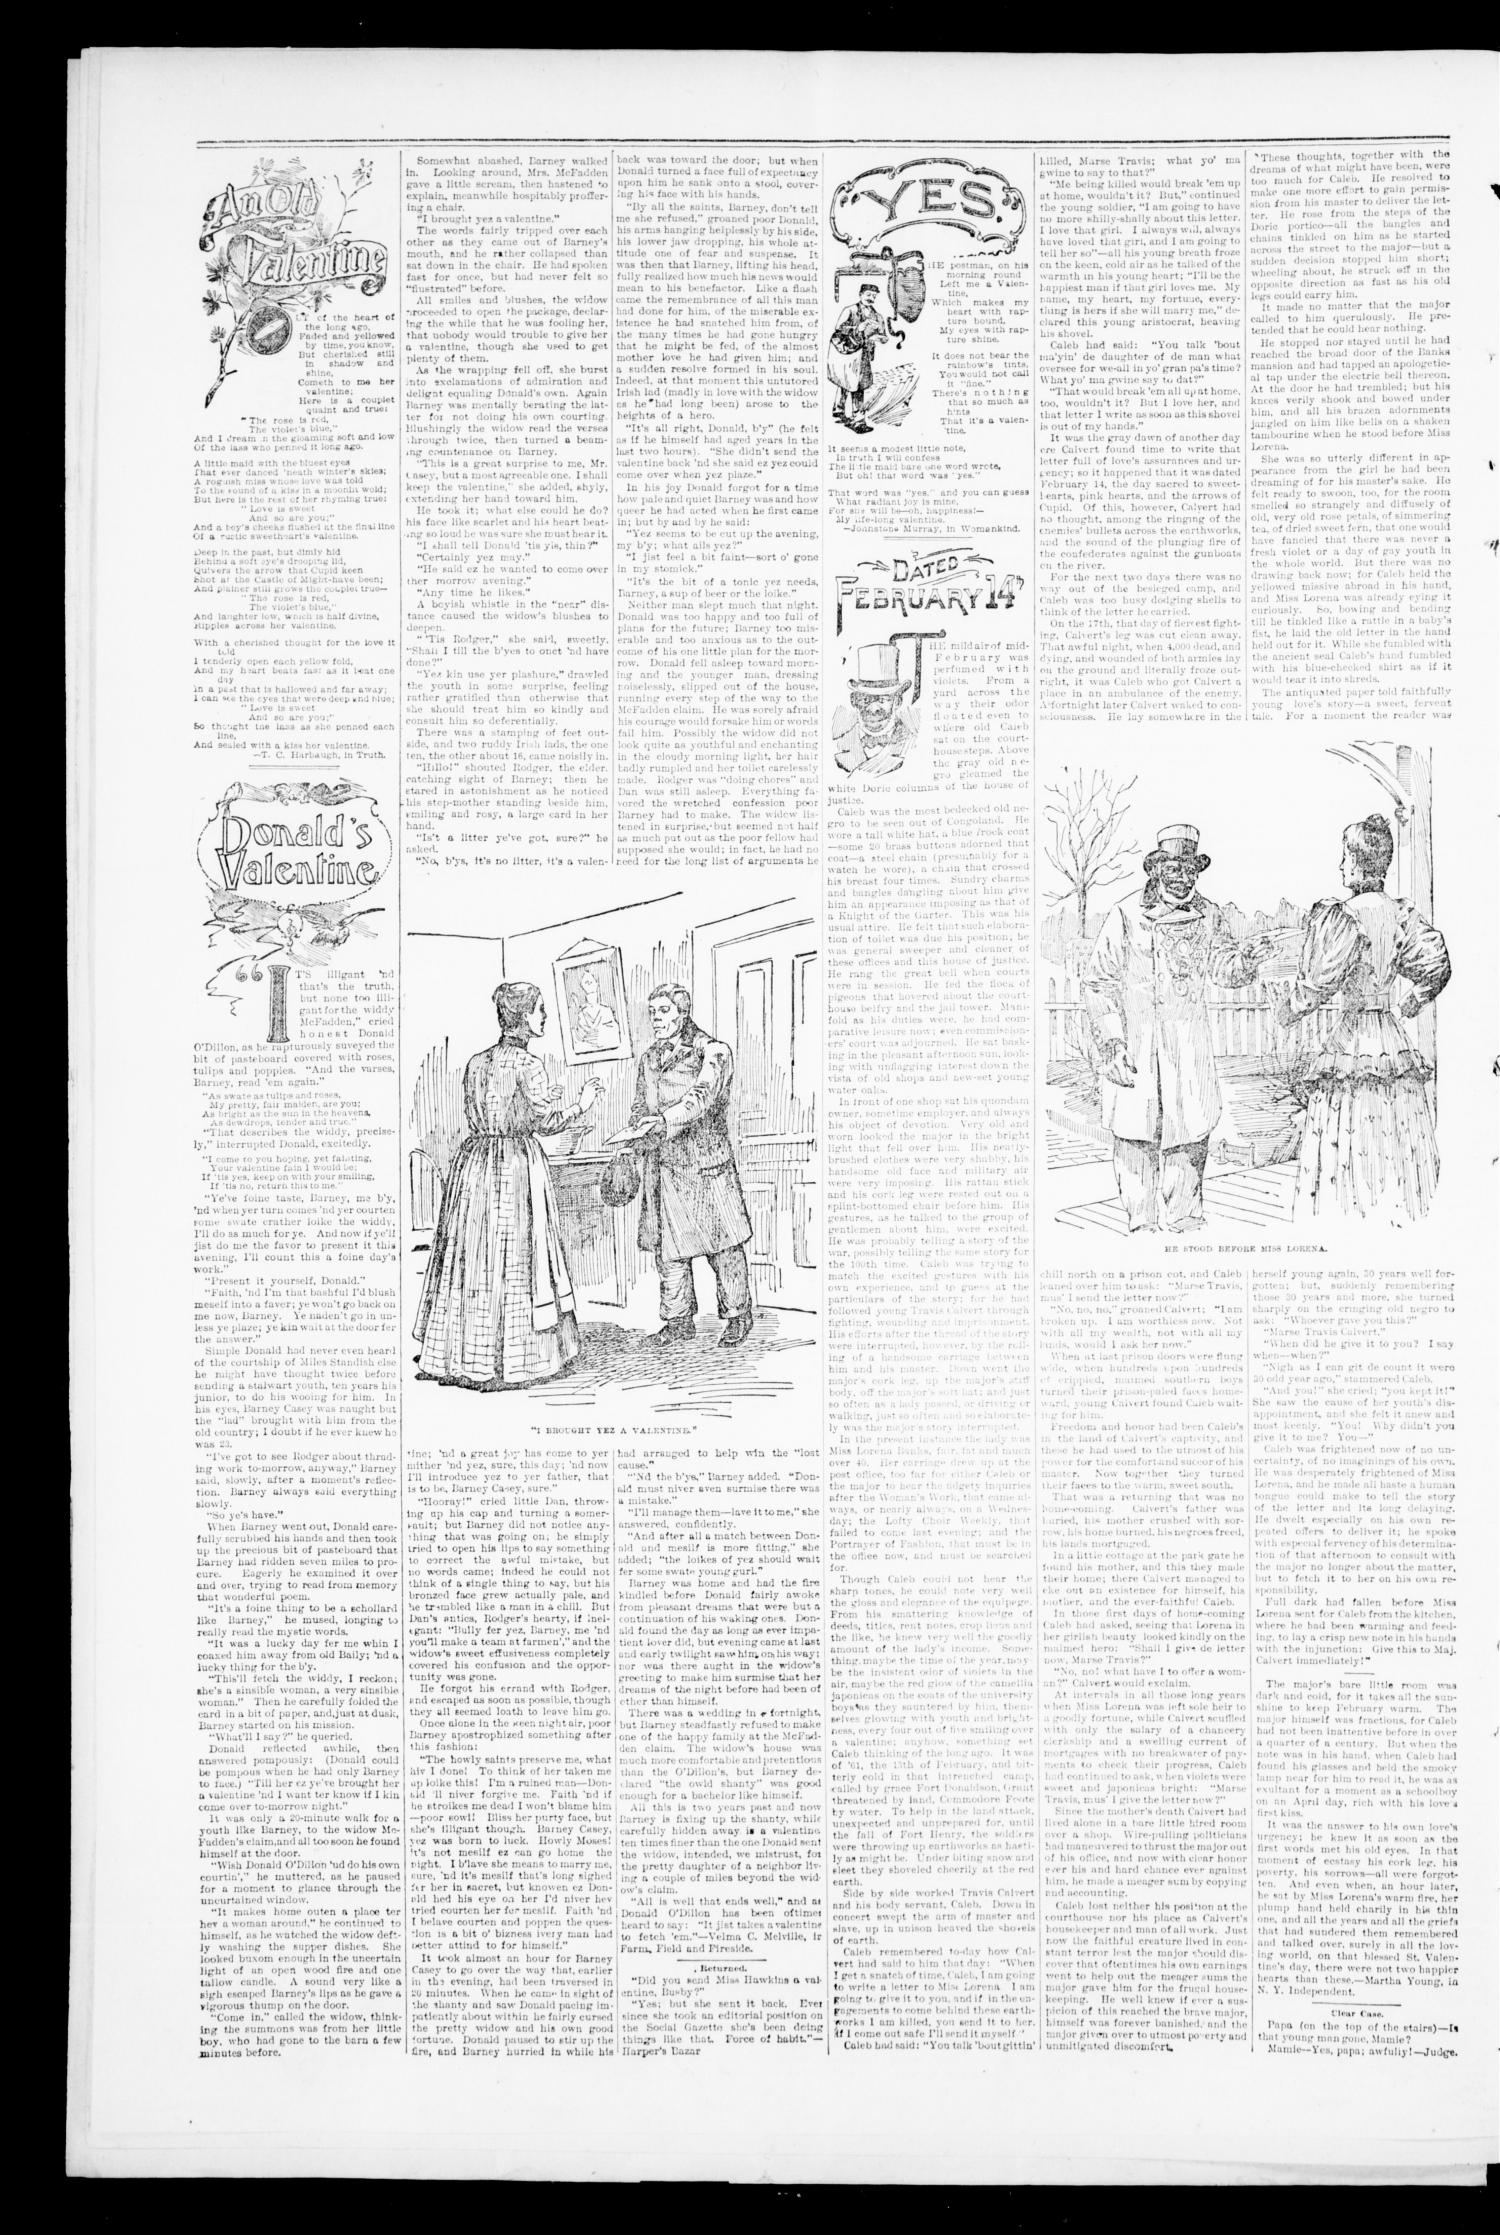 Perry Enterprise-Times. (Perry, Okla.), Vol. 2, No. 24, Ed. 1 Thursday, February 13, 1896                                                                                                      [Sequence #]: 2 of 8